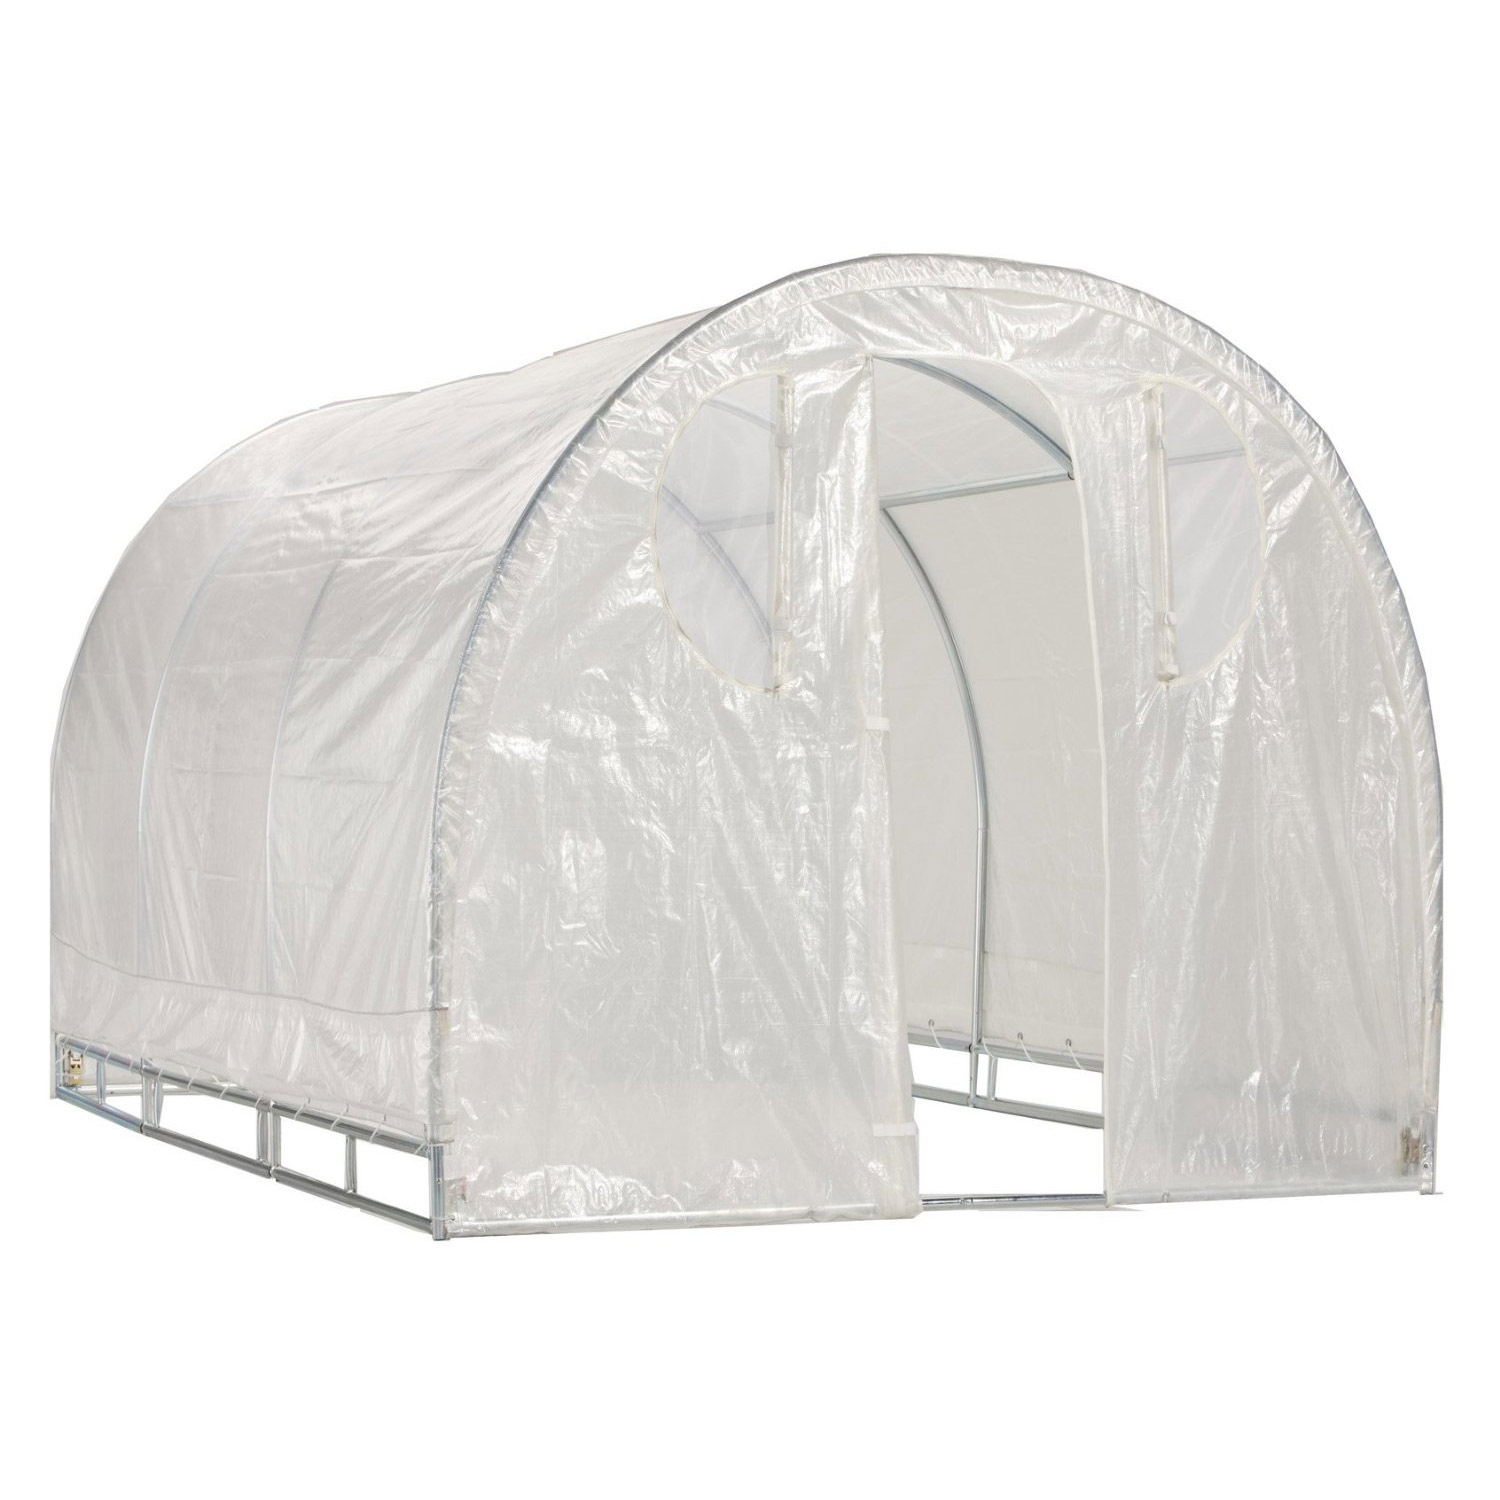 Poly-tunnel Hoop House Style Greenhouse (6' x 8'), PTHSG6X8 :  Designed as the highest quality, most compact, space saver green house packaged in a retail box. This Polytunnel hoop-house cold-frame style High-Tunnel features a space saver design.  The modern greenhouse offers all of the same quality, workmanship, and results as the Commercial Series Green House while appealing to beginner, novice, and professional growers alike. Each Deck and Patio greenhouse is constructed from 100% commercial grade galvanized steel frame – featuring quick connect steel frame and steel frame connectors. It includes a rugged all weather triple layer Polyurethane, cover, back panel, and front entry. Rust resistant galvanized steel. The frame components and frame connectors are galvanized after being welded. This Greenhouse provides maximum protection, growth, and reliability by using a complete three piece all growth fabric construction with unit-body cover, solid connected back panel, and solid connected front entry – allowing for easy access and maintenance of plants, vegetables and herbs. It also utilizes Smart Vent – technology controlling airflow from the base of the unit and the ends of the unit with special zip out Velcro held screened vented windows. In addition the triple ridge reinforced roof structure not only acts as a weather guardian protecting against severe and inclement weather but also allows growing enthusiasts to hang their full size basket plants from the roof of the green house. All-steel construction with flex frame design and 1-1/4-inch, 16-gauge steel for stability. 14-gauge inside steel slip fitting joints for rugged rigidity and easy setup.